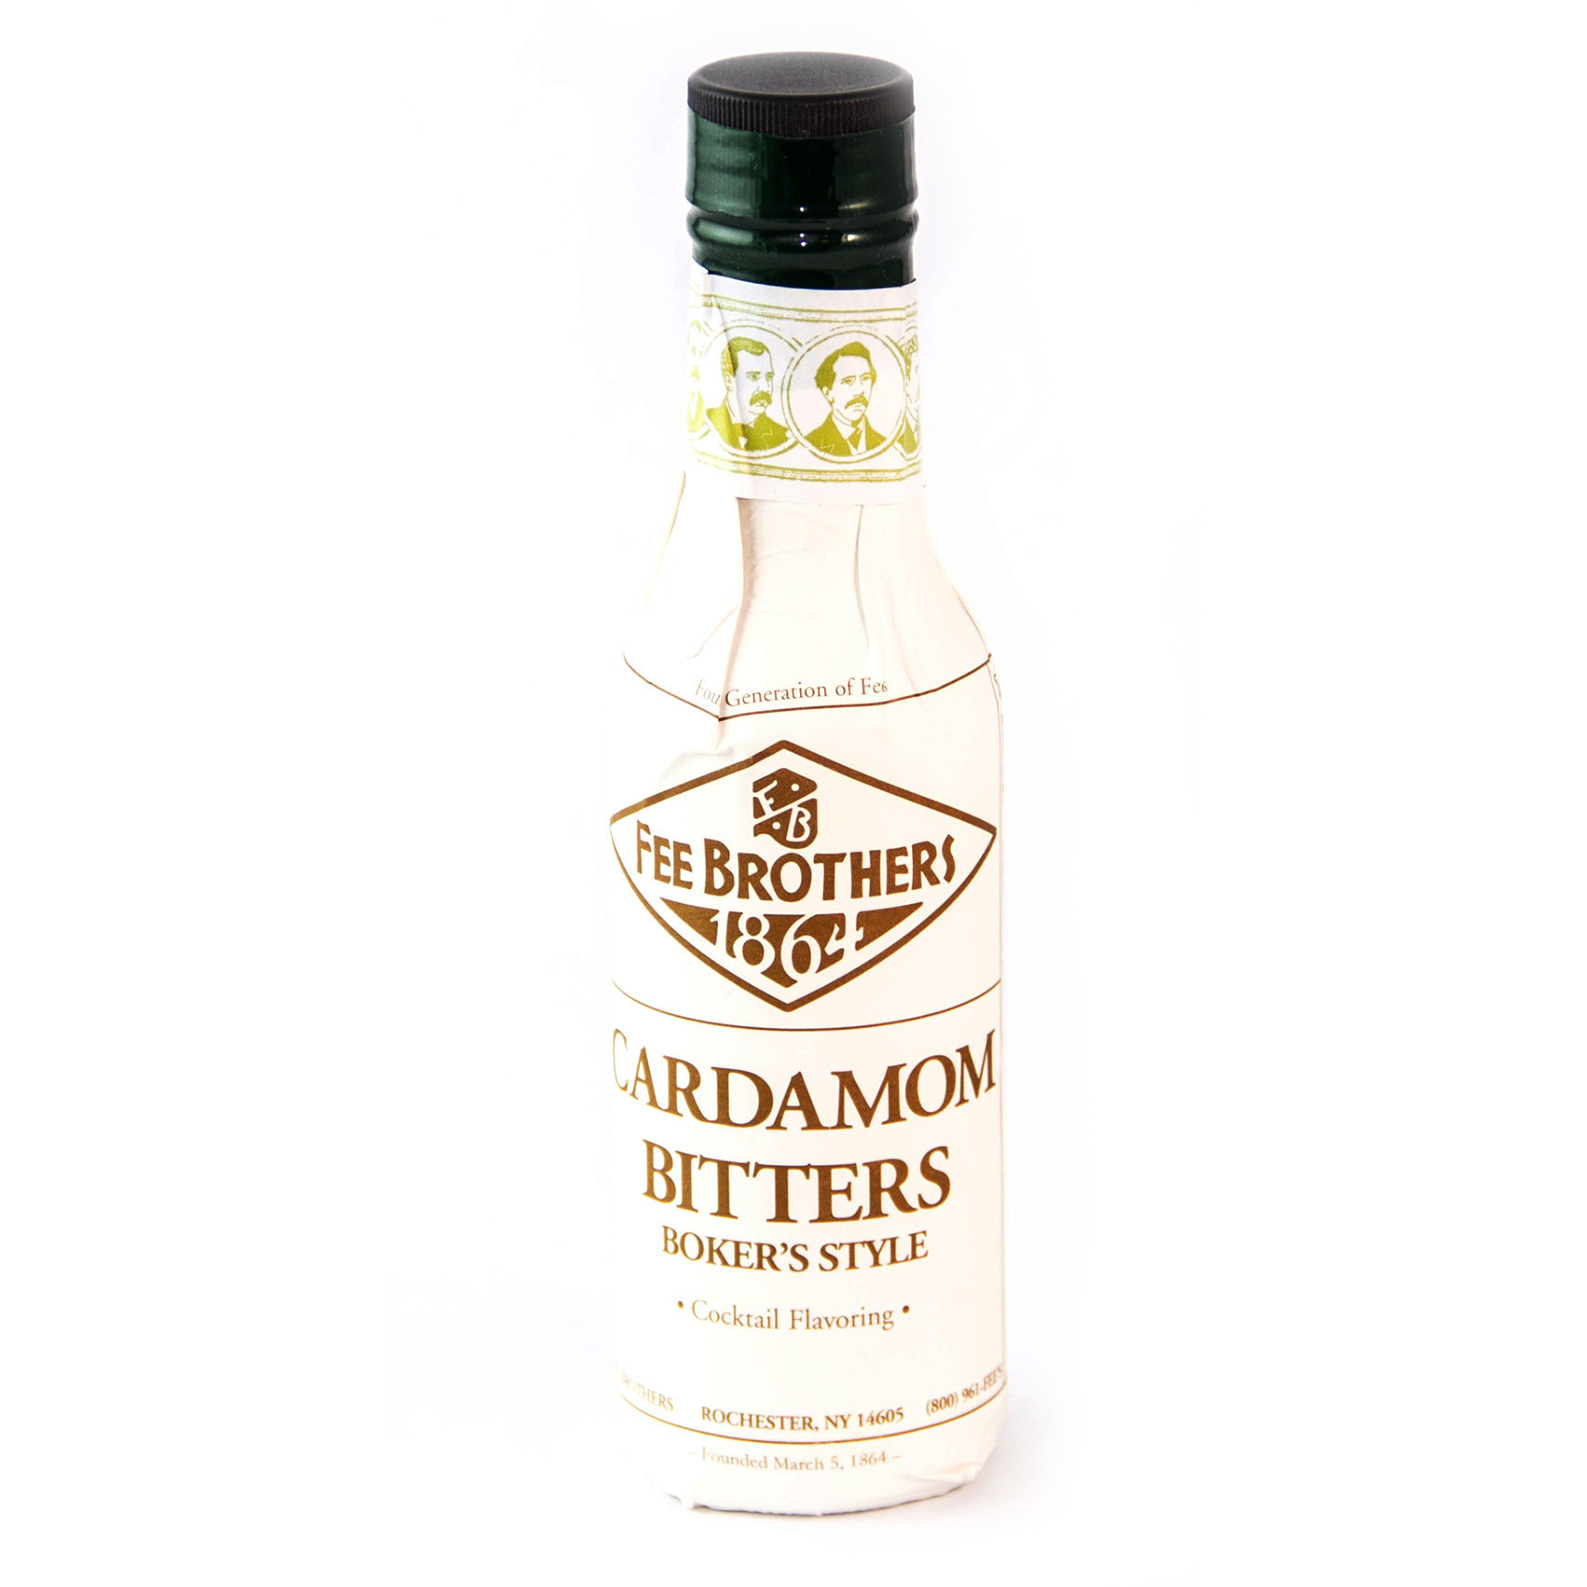 Fee Brothers 1864 Cardamom - Bitter Aromatico - 15cl - Fee Brothers